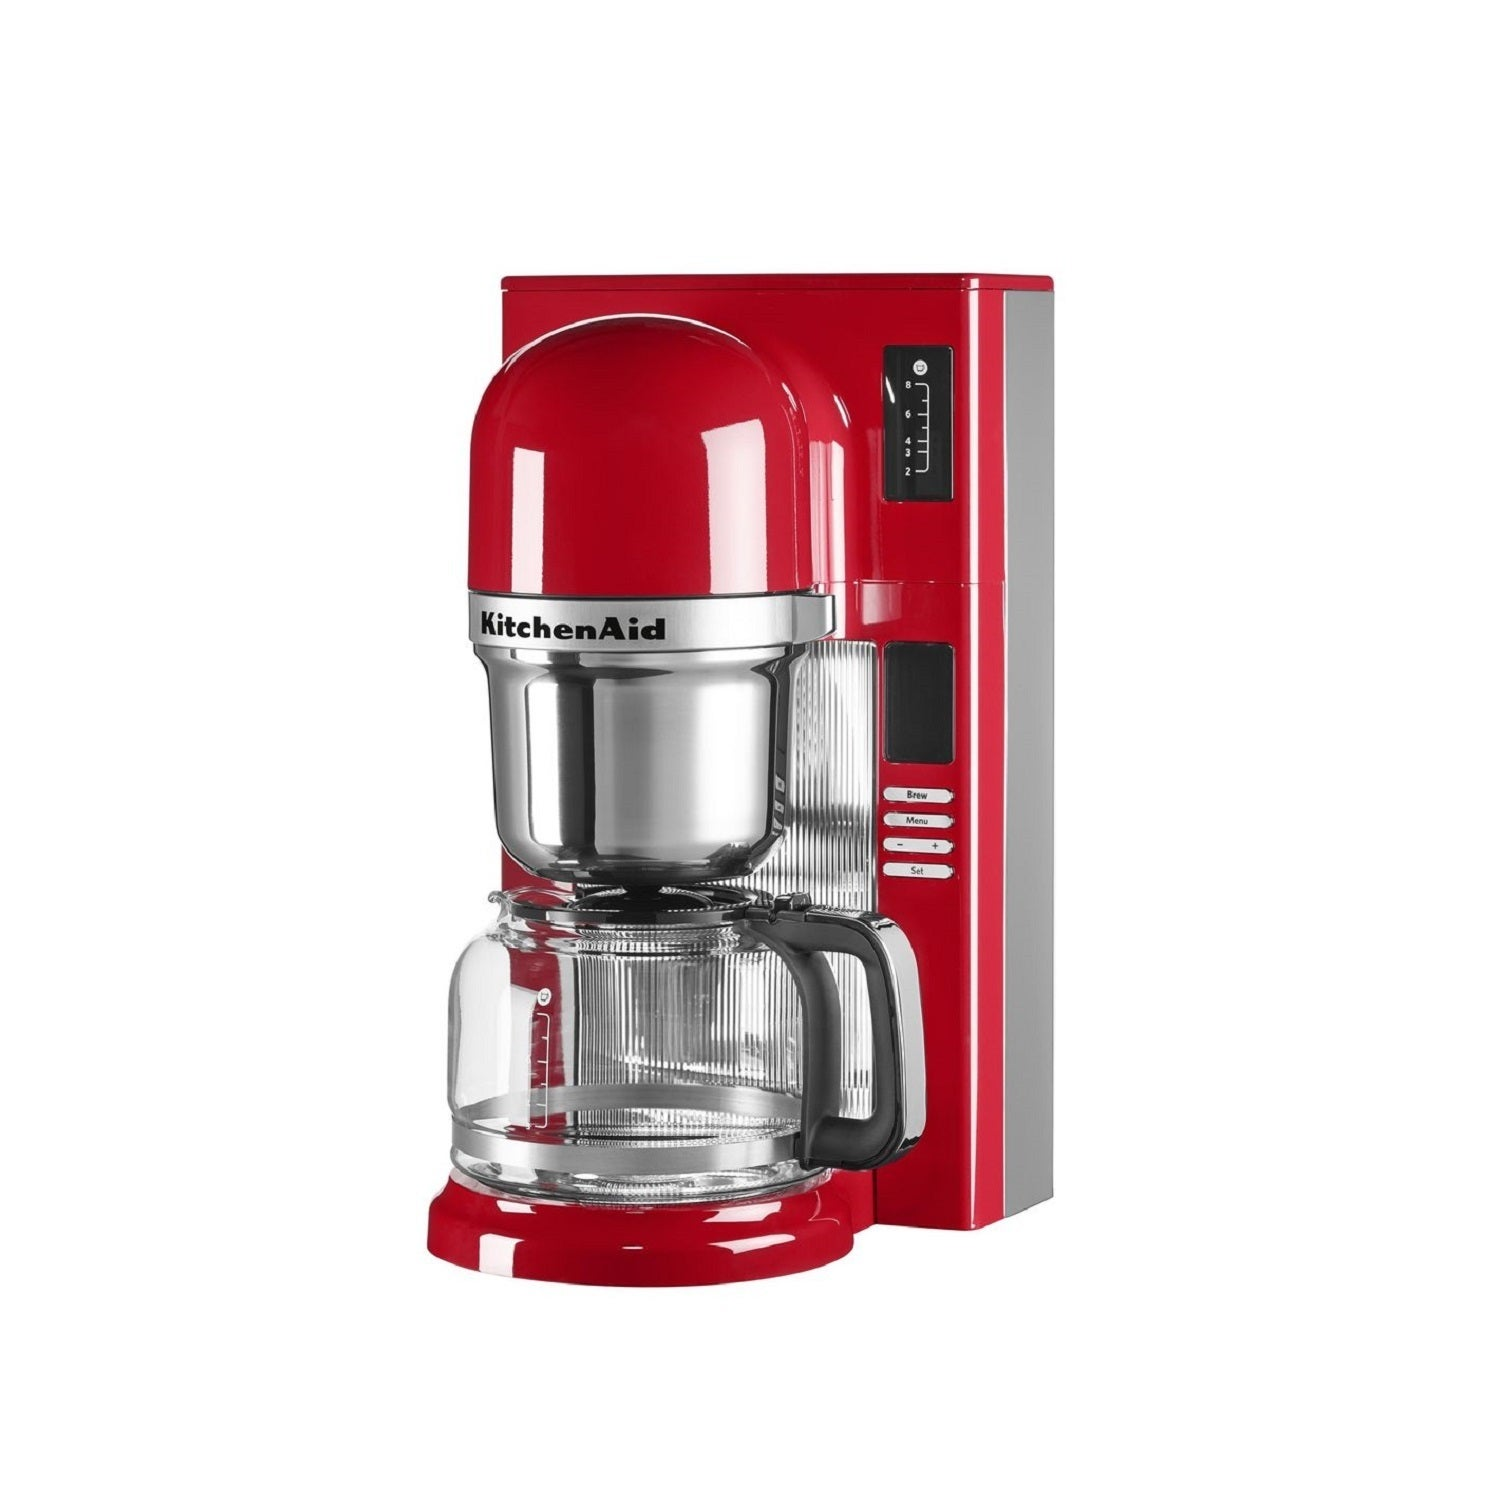 Kitchenaid Reich Red 8 Cup Custom Pour Over Coffee Maker